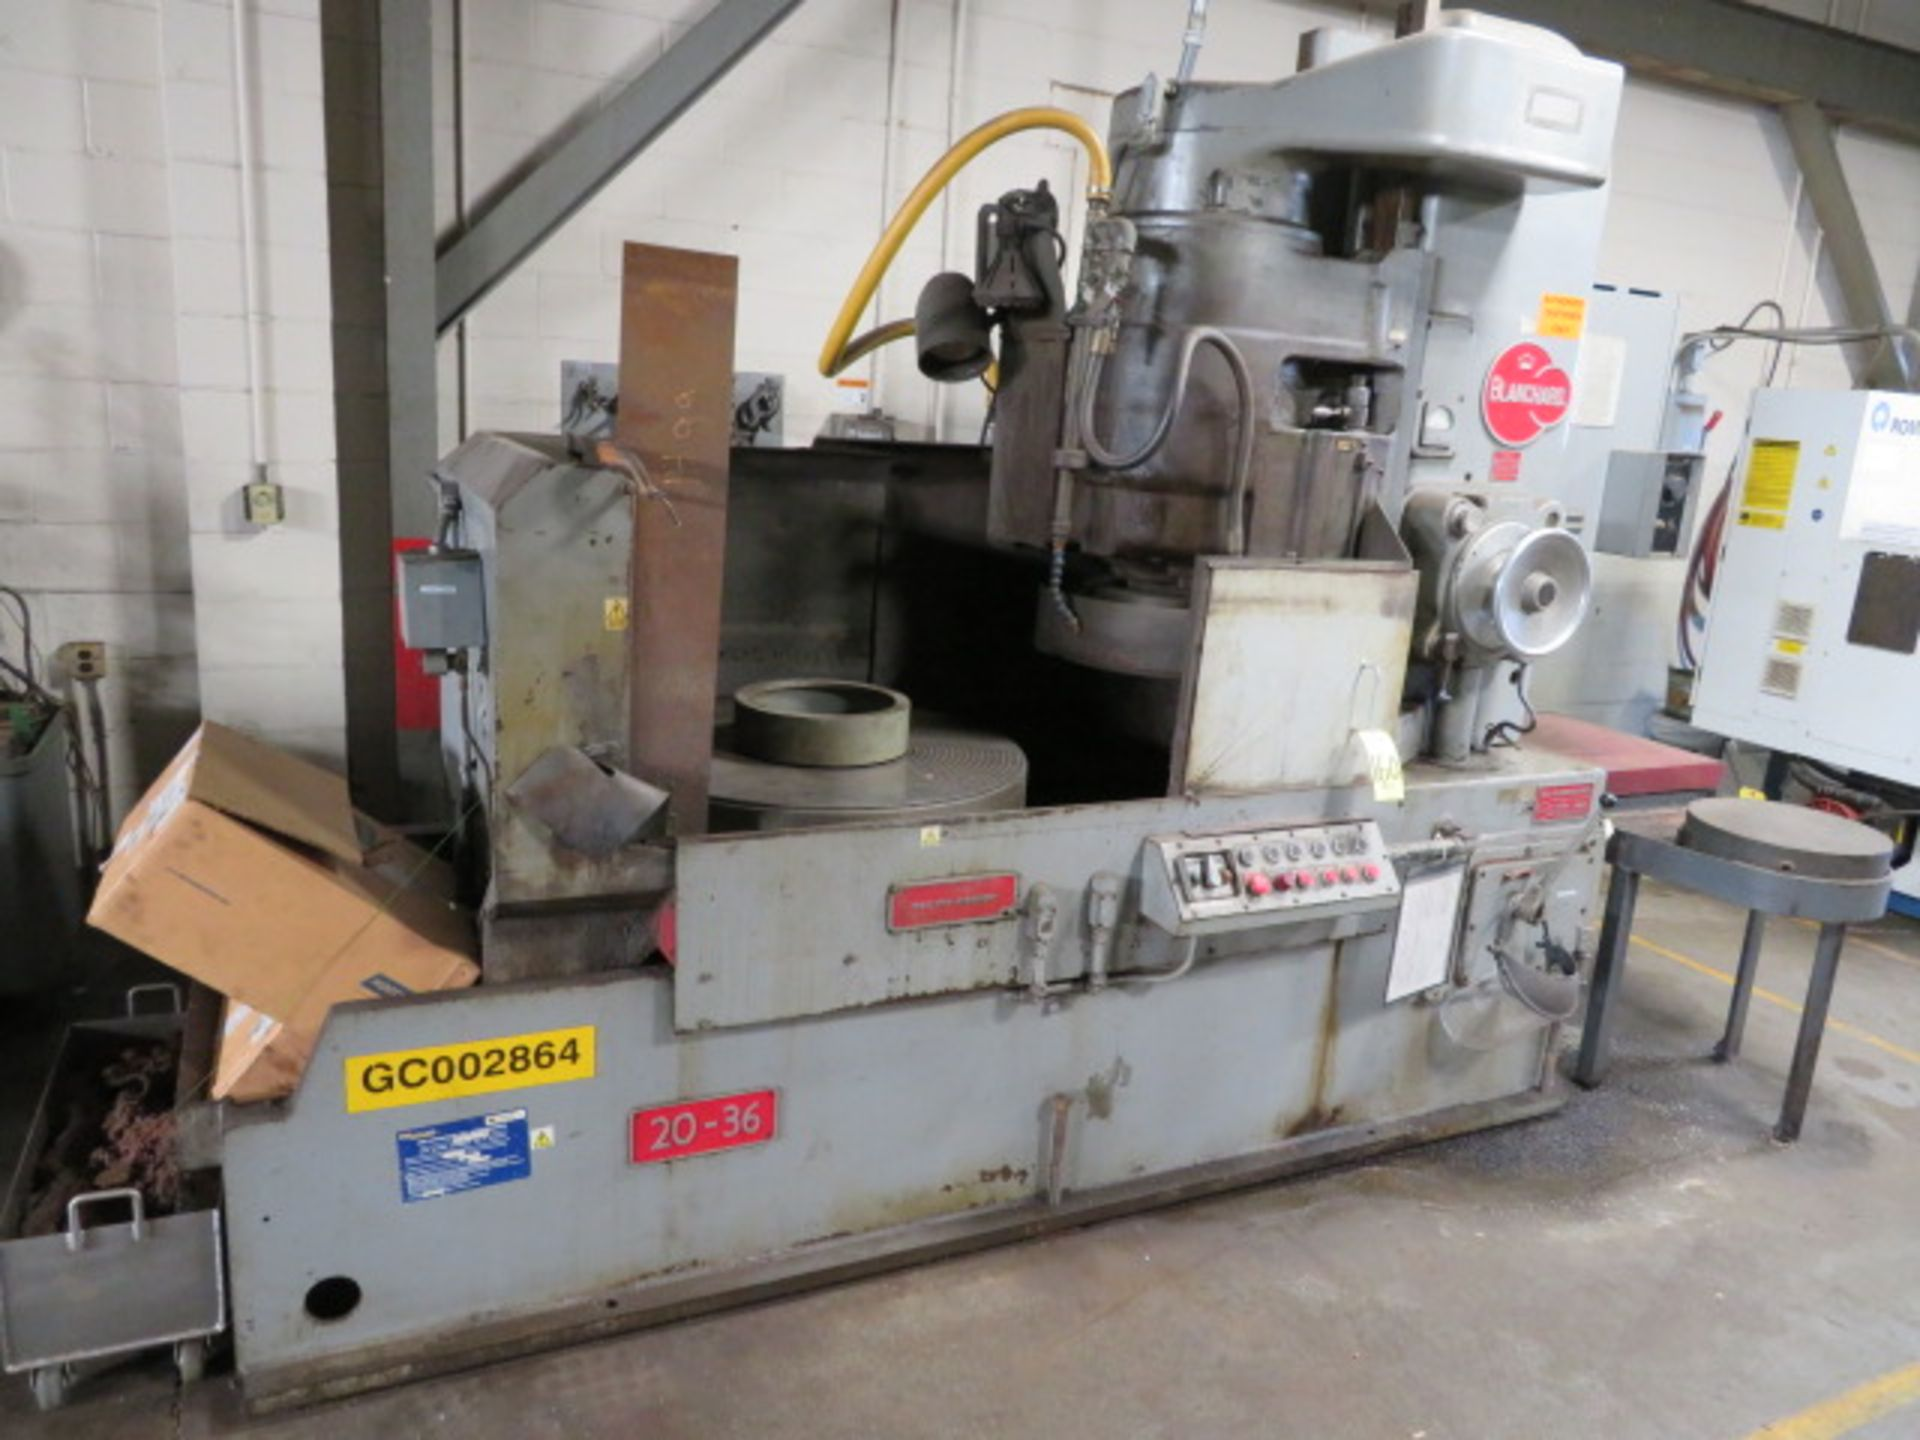 """Lot 160 - 1980 BLANCHARD 20-36 Rotary Surface Grinder, S/N 20-15-239, 22KW (30HP), 5/16"""" Chuck, Electro-Mag"""